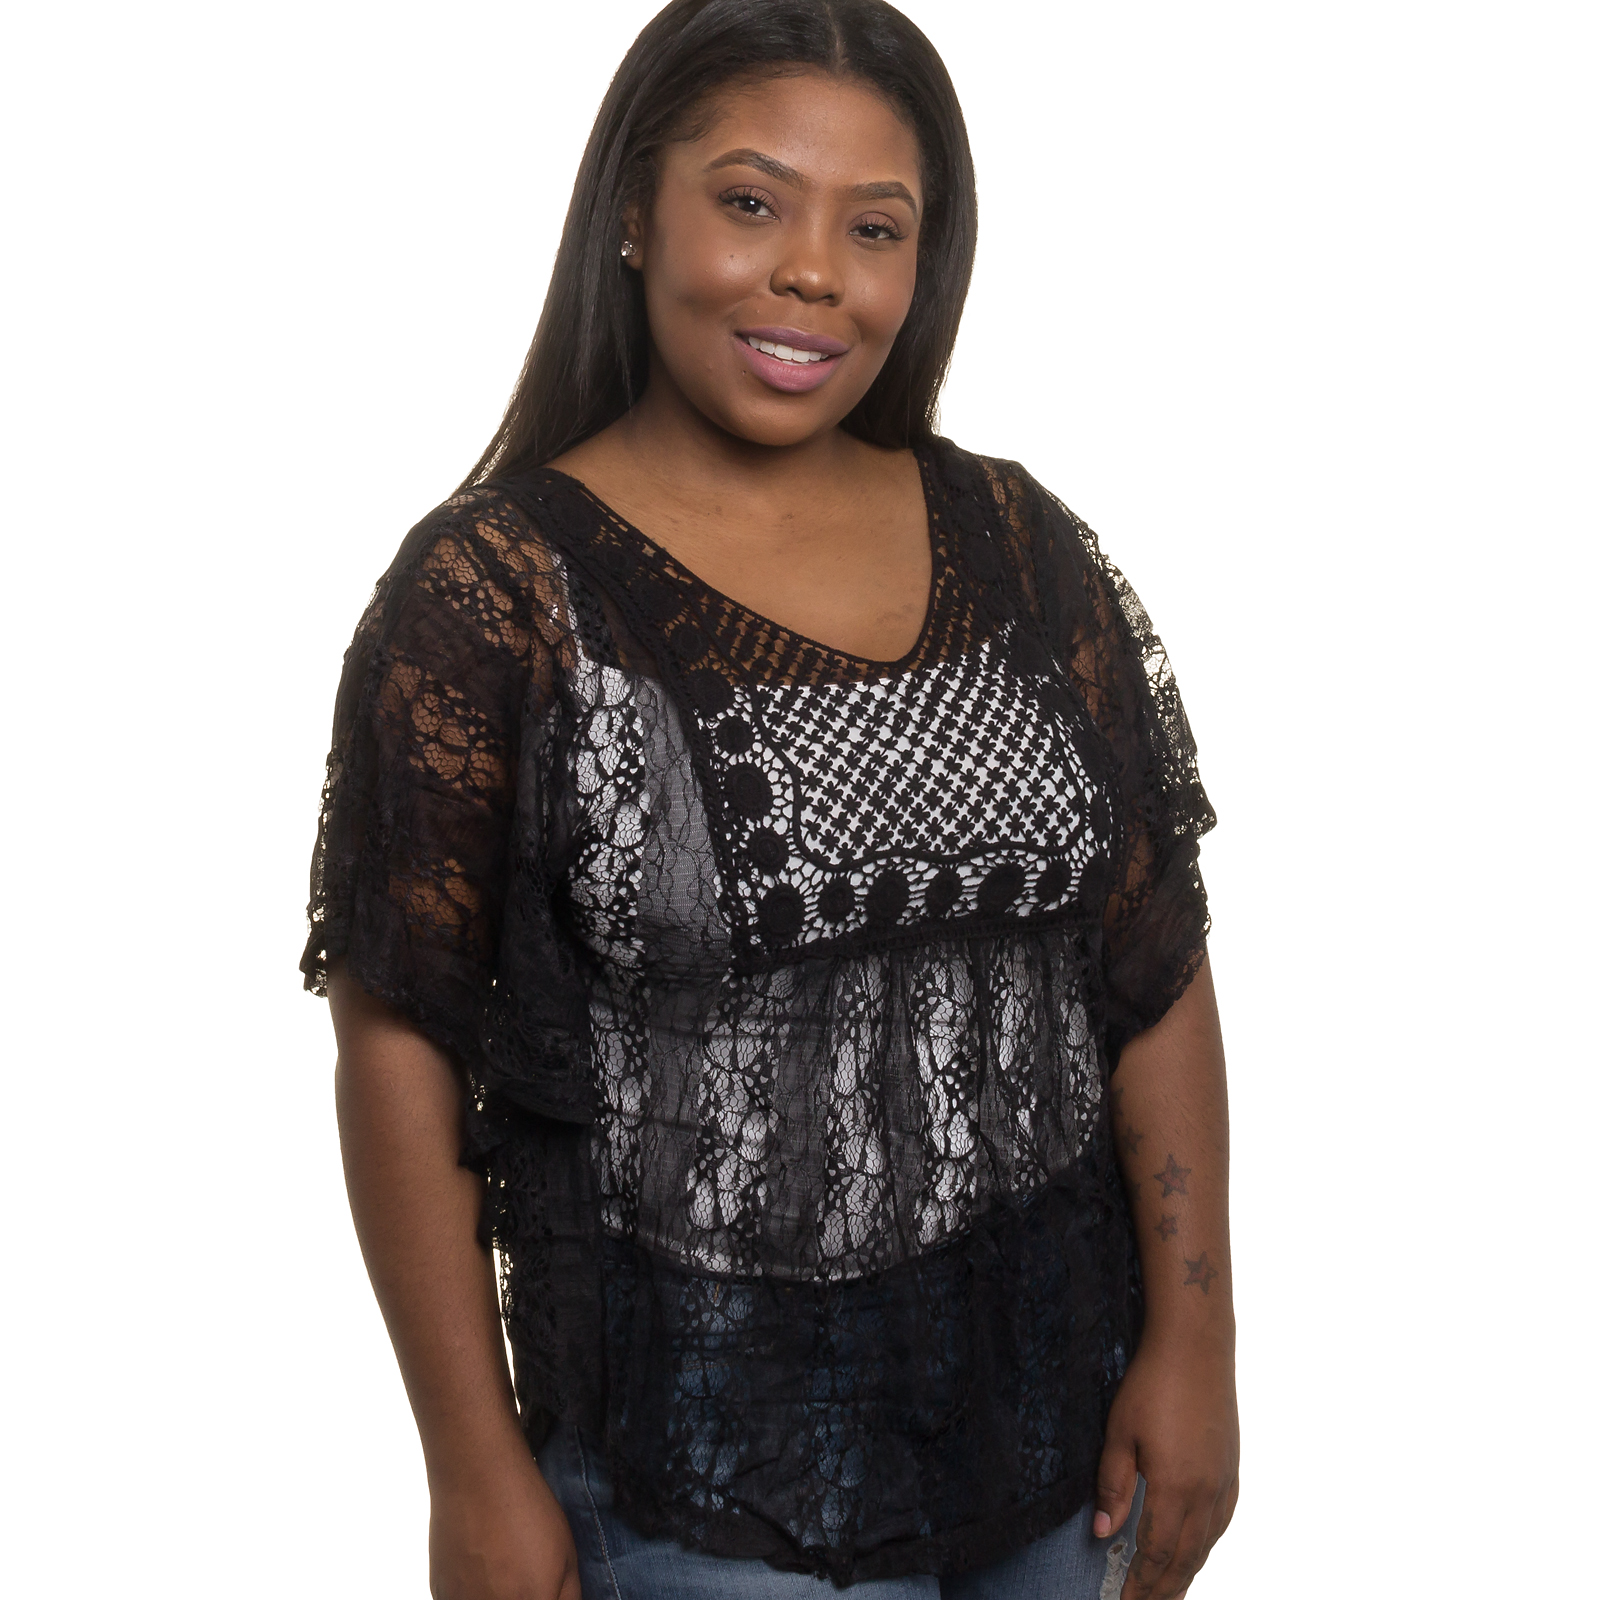 SILVER LILLY NEW Womens Junior Plus Size Sheer Crochet Lace Tank Top (BLK, 3X)